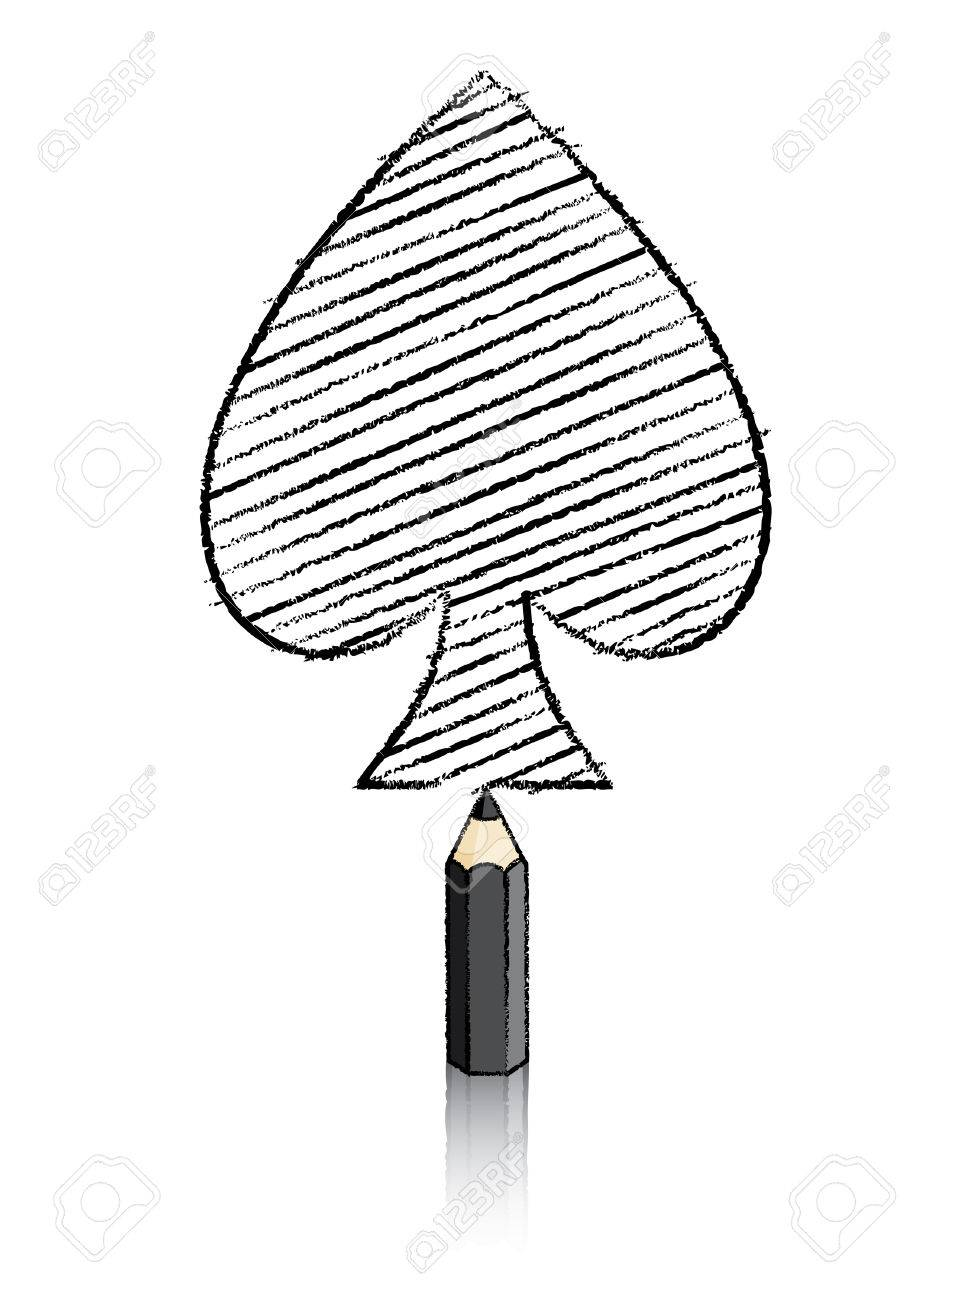 Black pencil with reflection drawing spades playing card icon stock vector 26529765